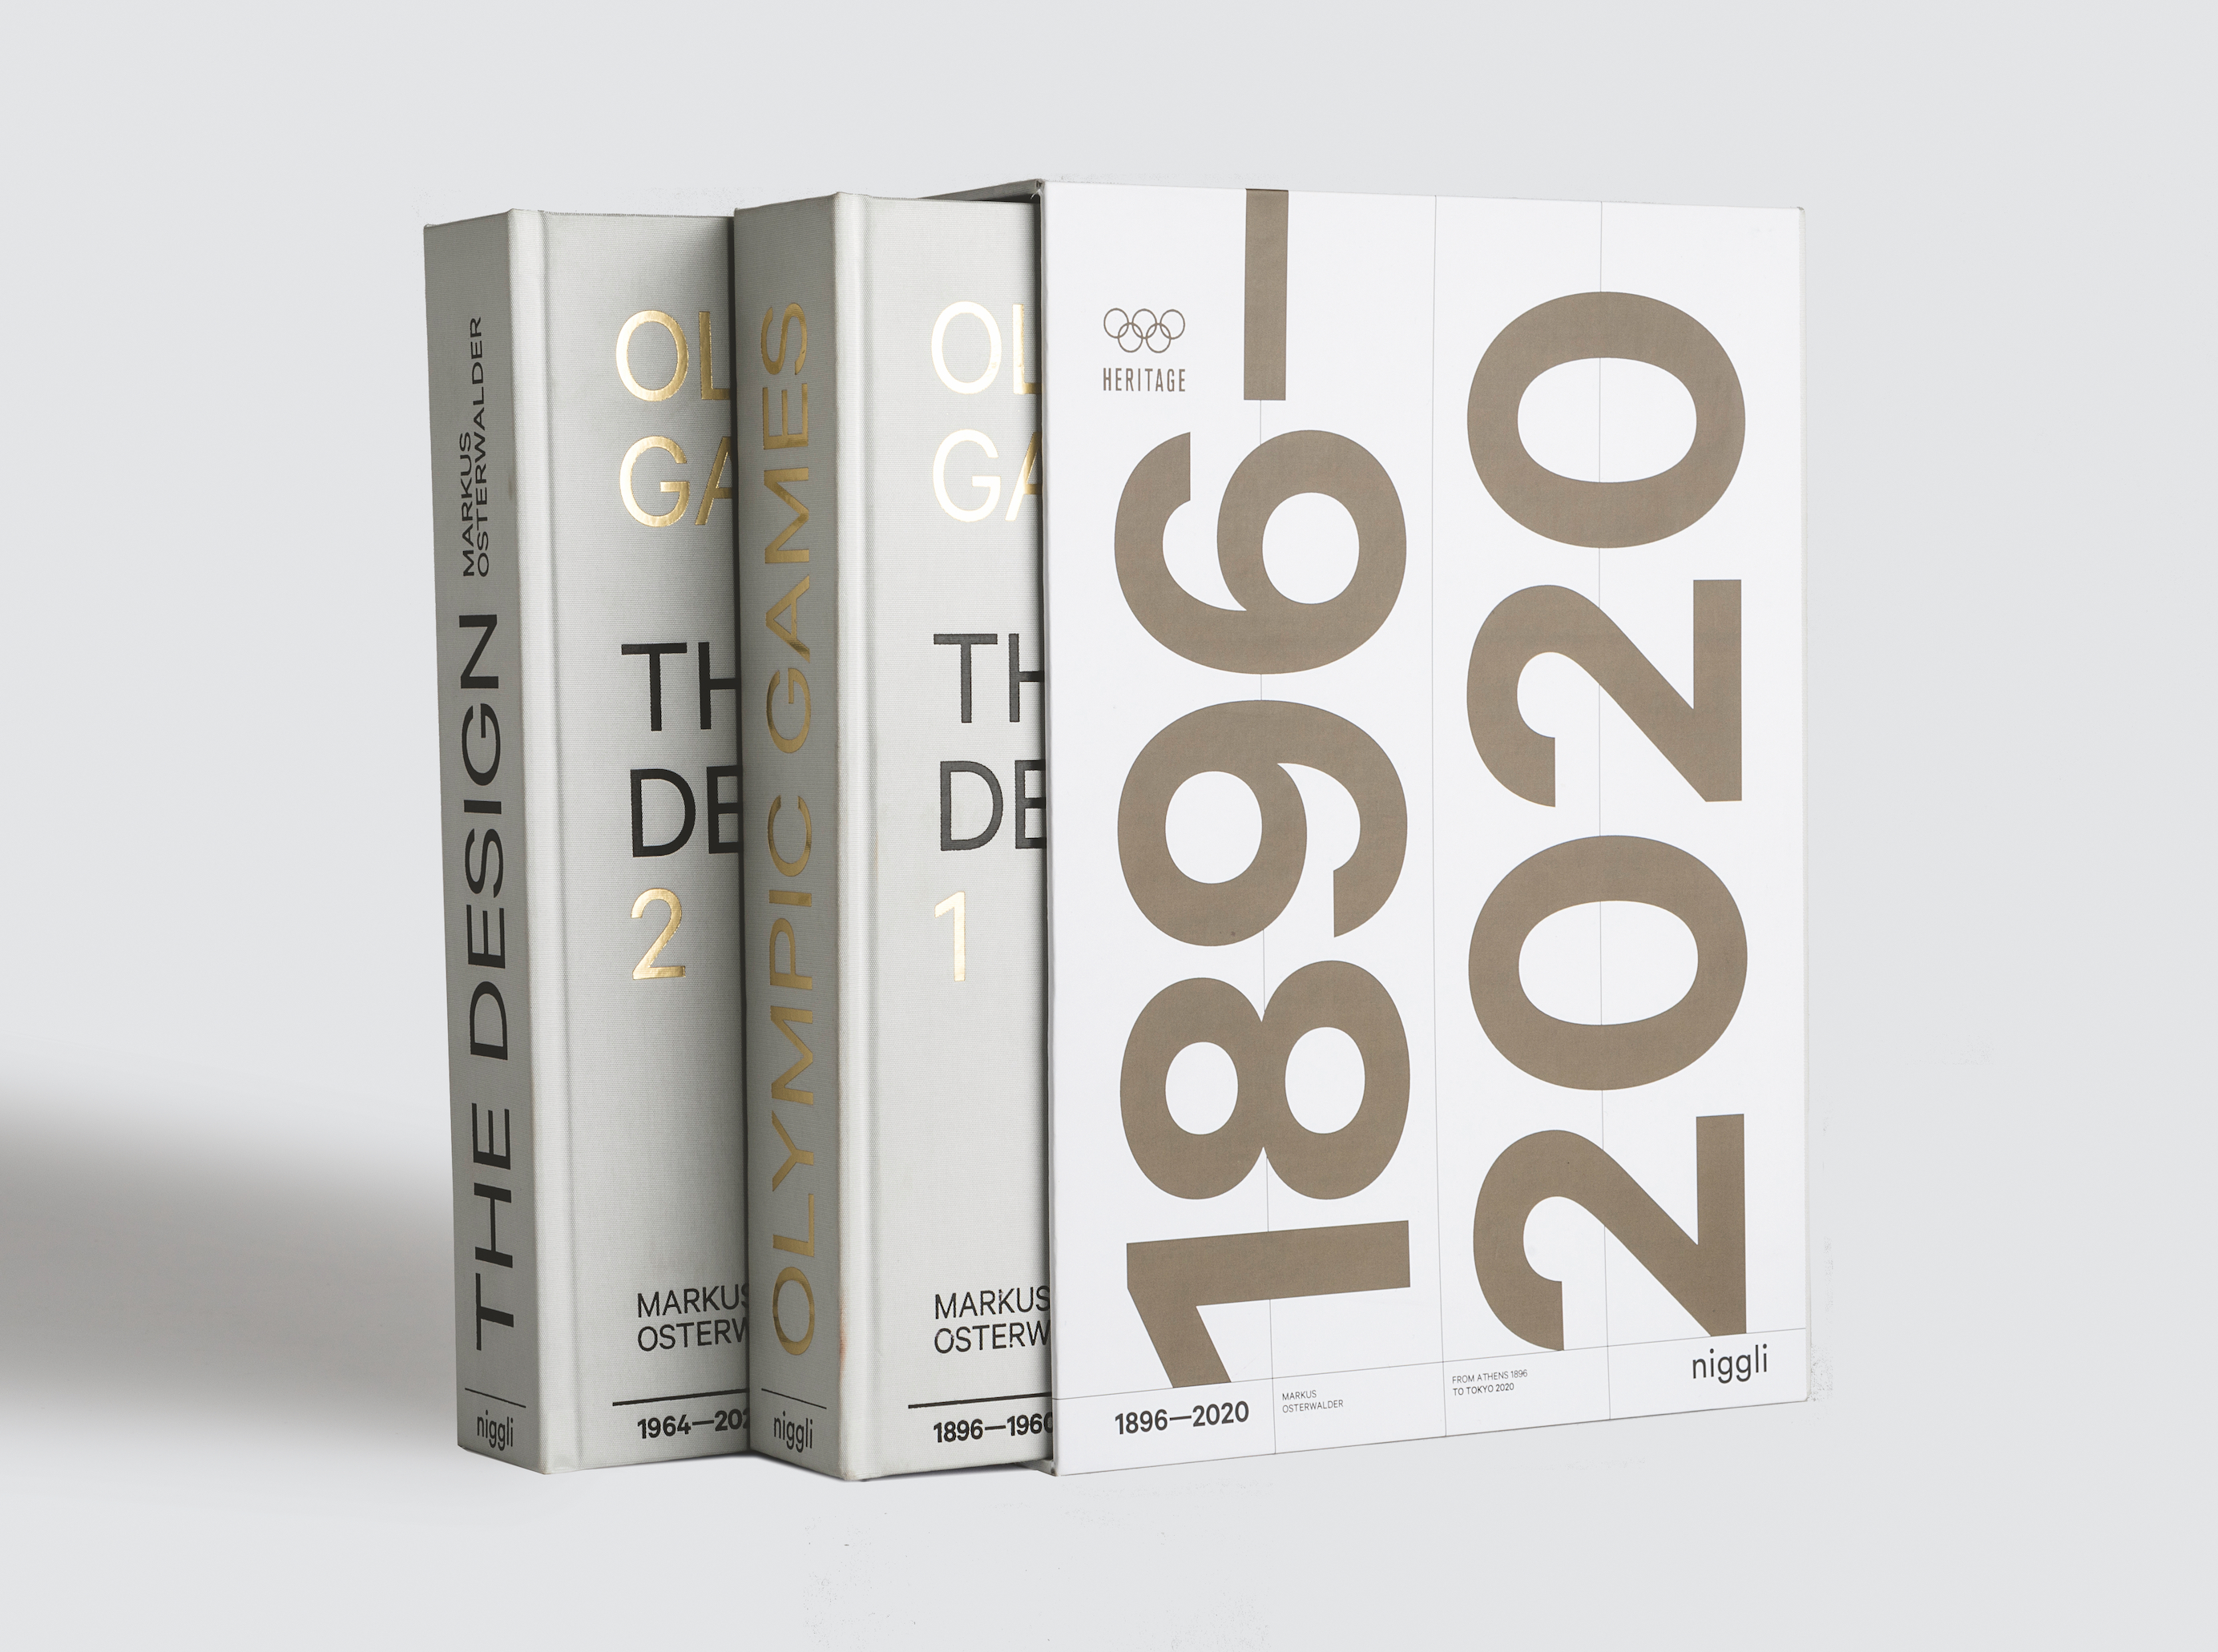 Olympic Games - The Design